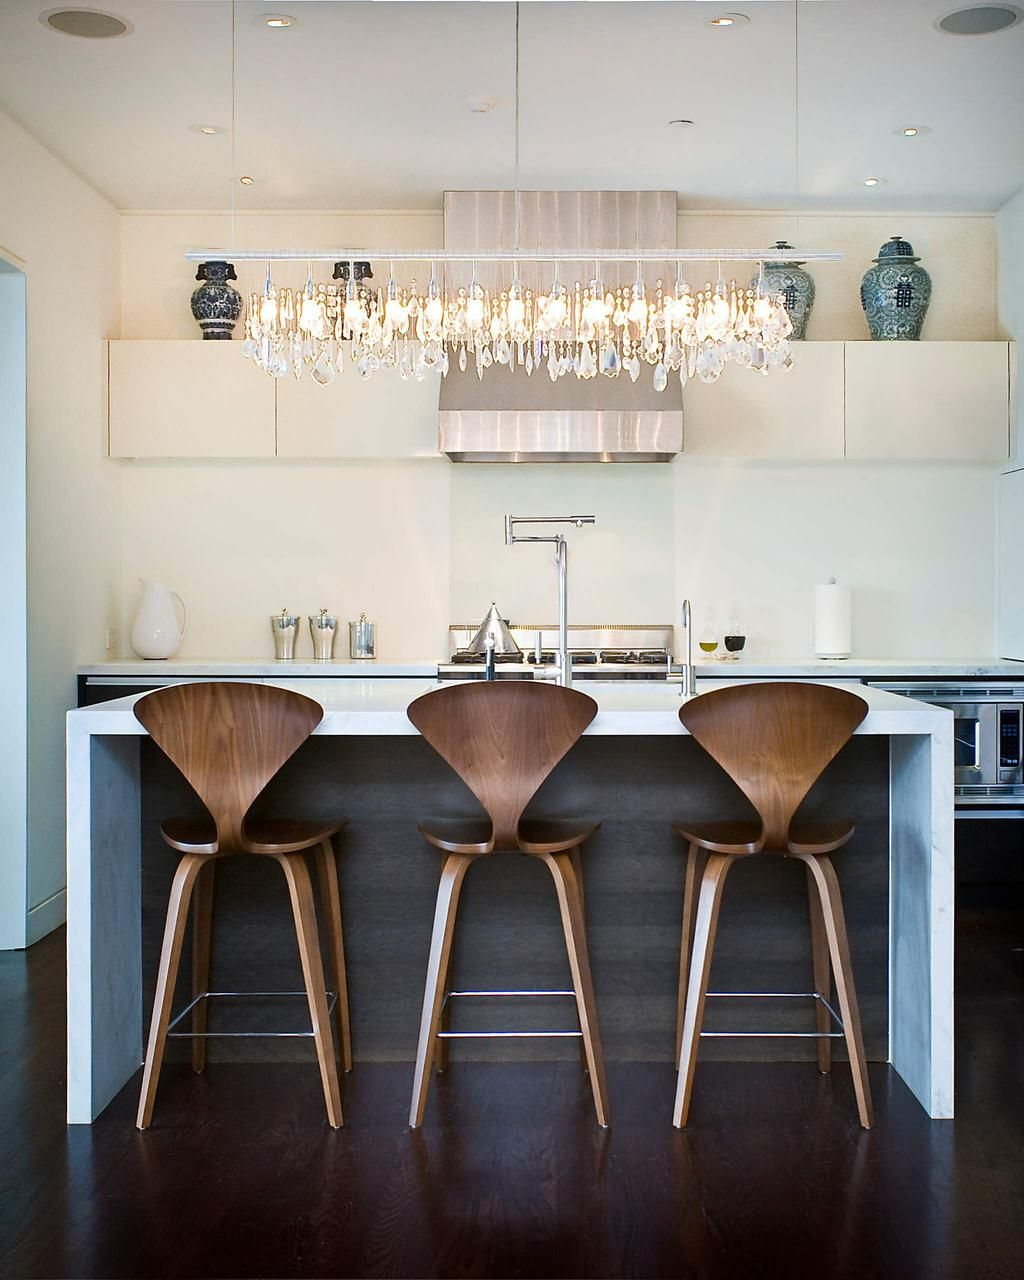 A Round Up Of Classic And Modern Bar And Counter Stools For A Traditional Modern And Tra Stools For Kitchen Island Kitchen Bar Stools Bar Stools Kitchen Island